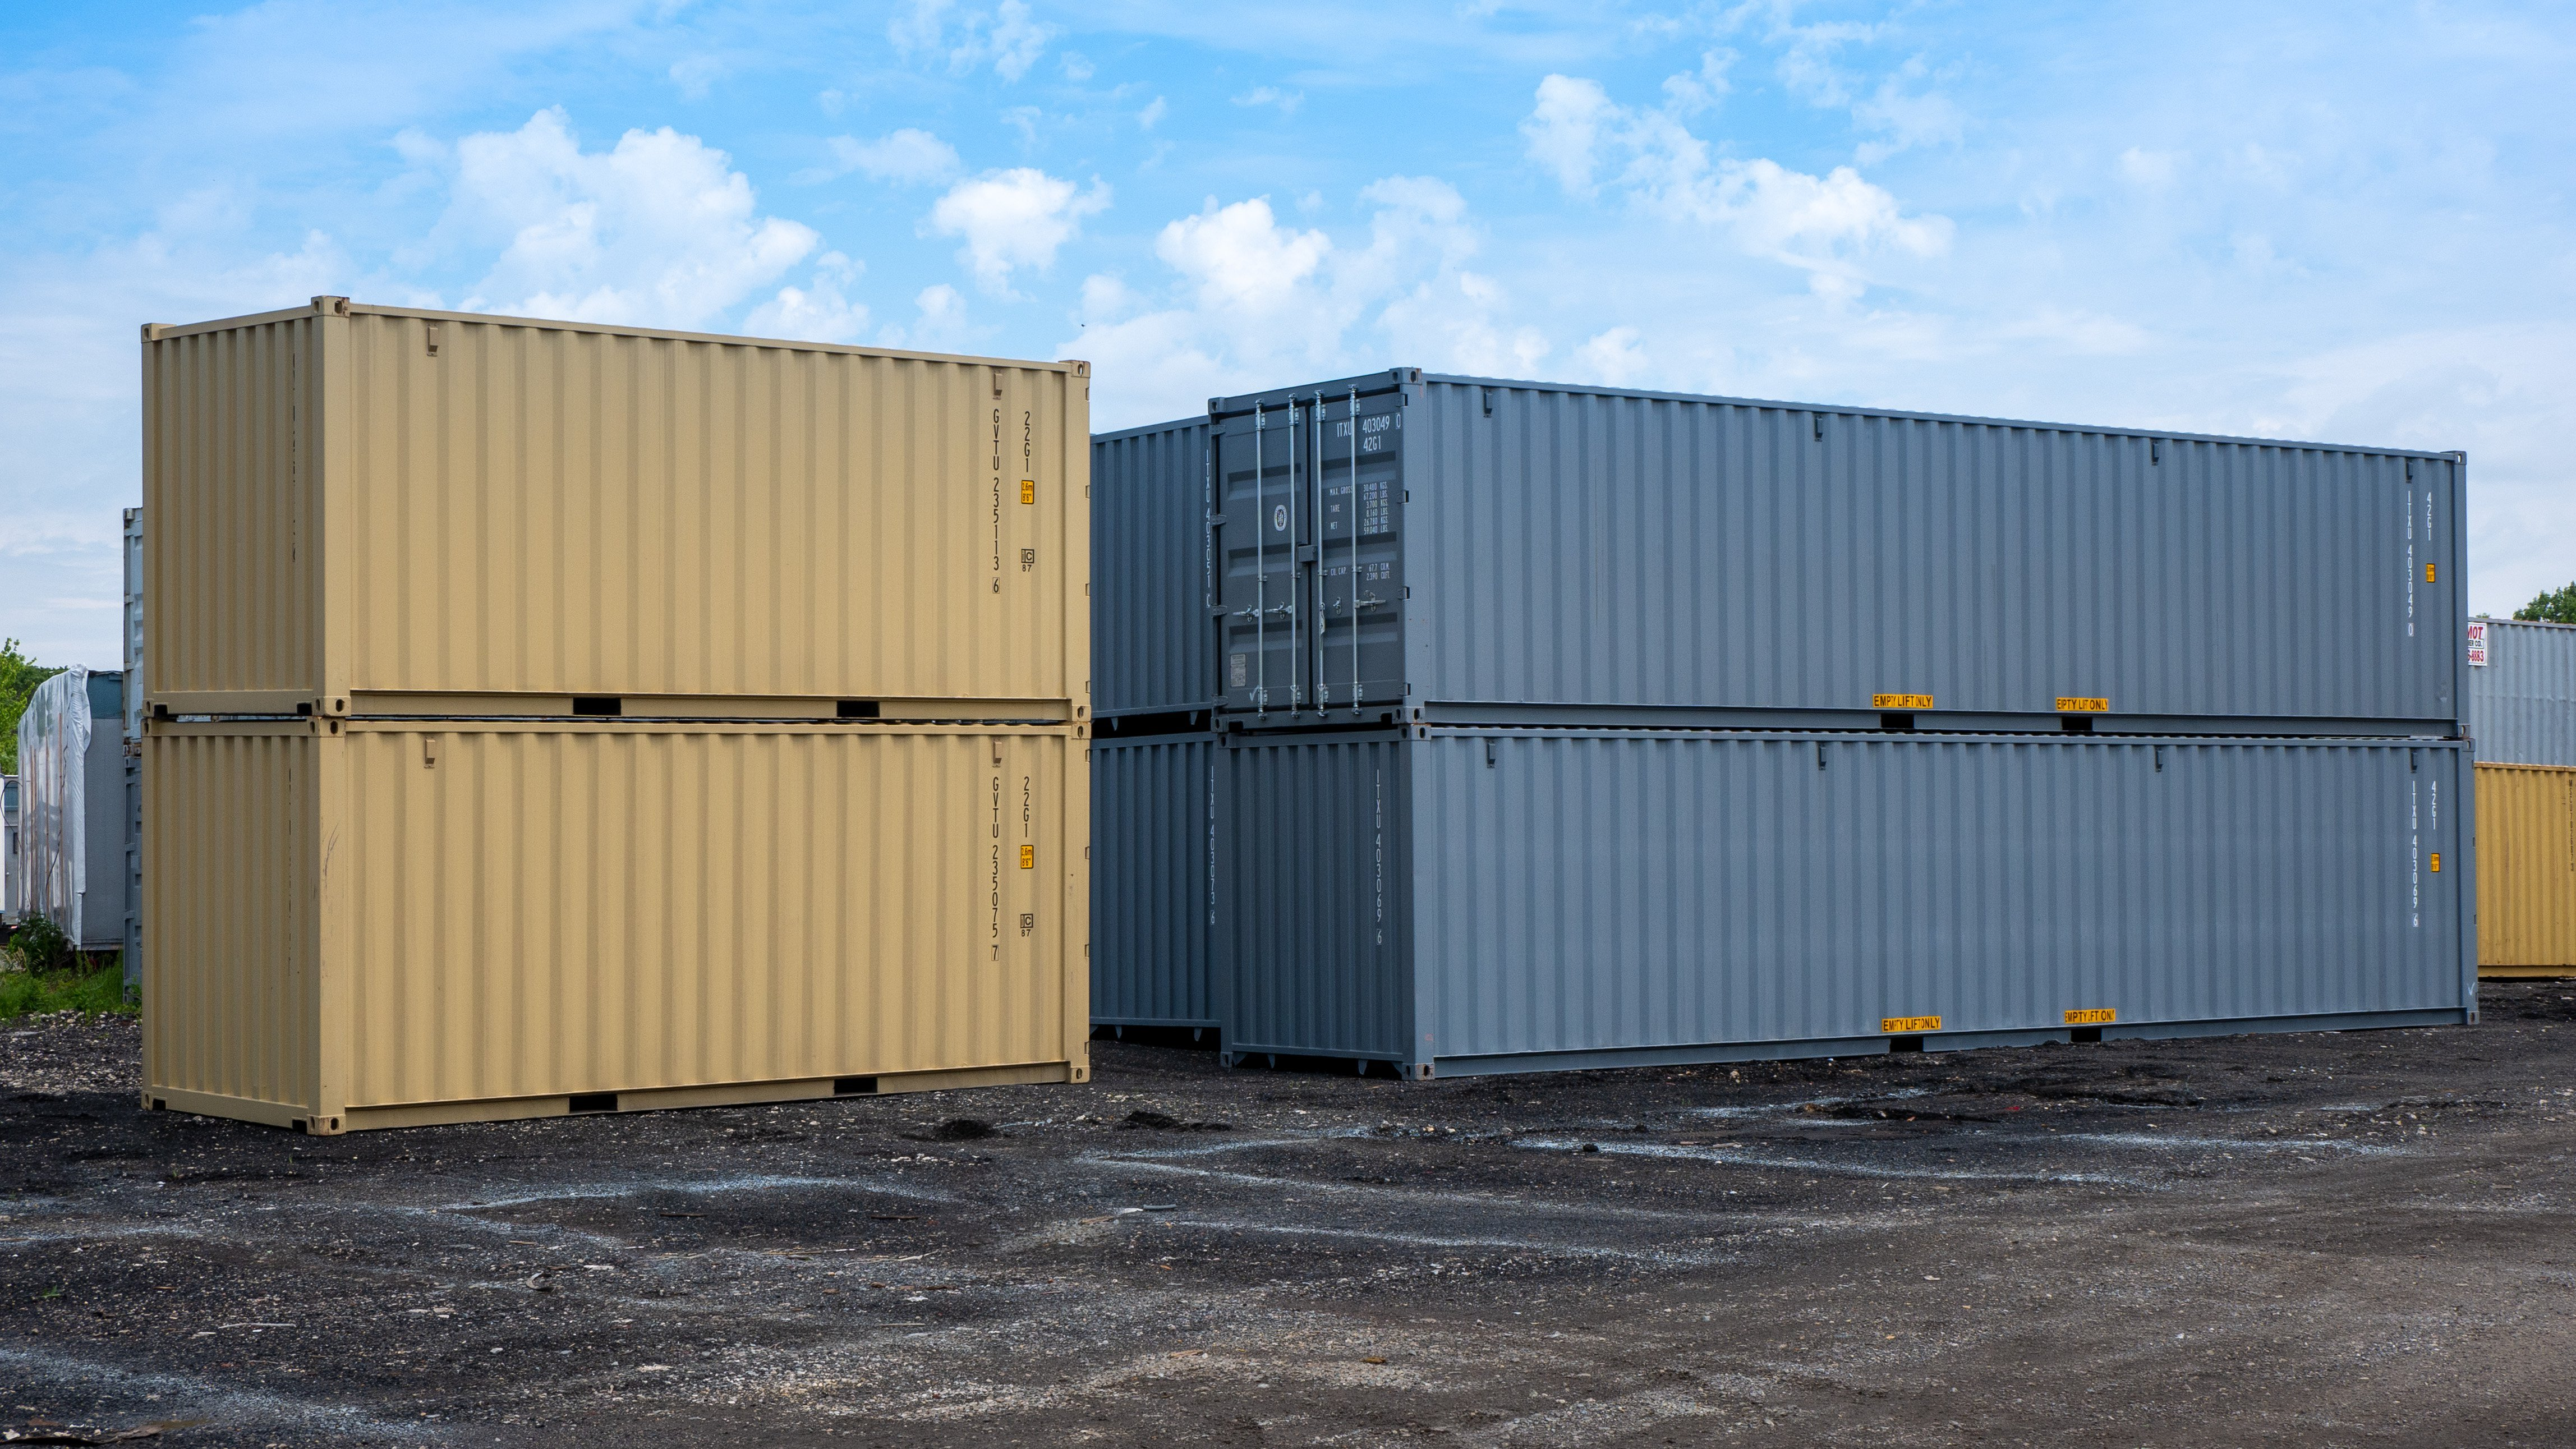 The Repurposed Shipping Container Industry | Wilmot Modular